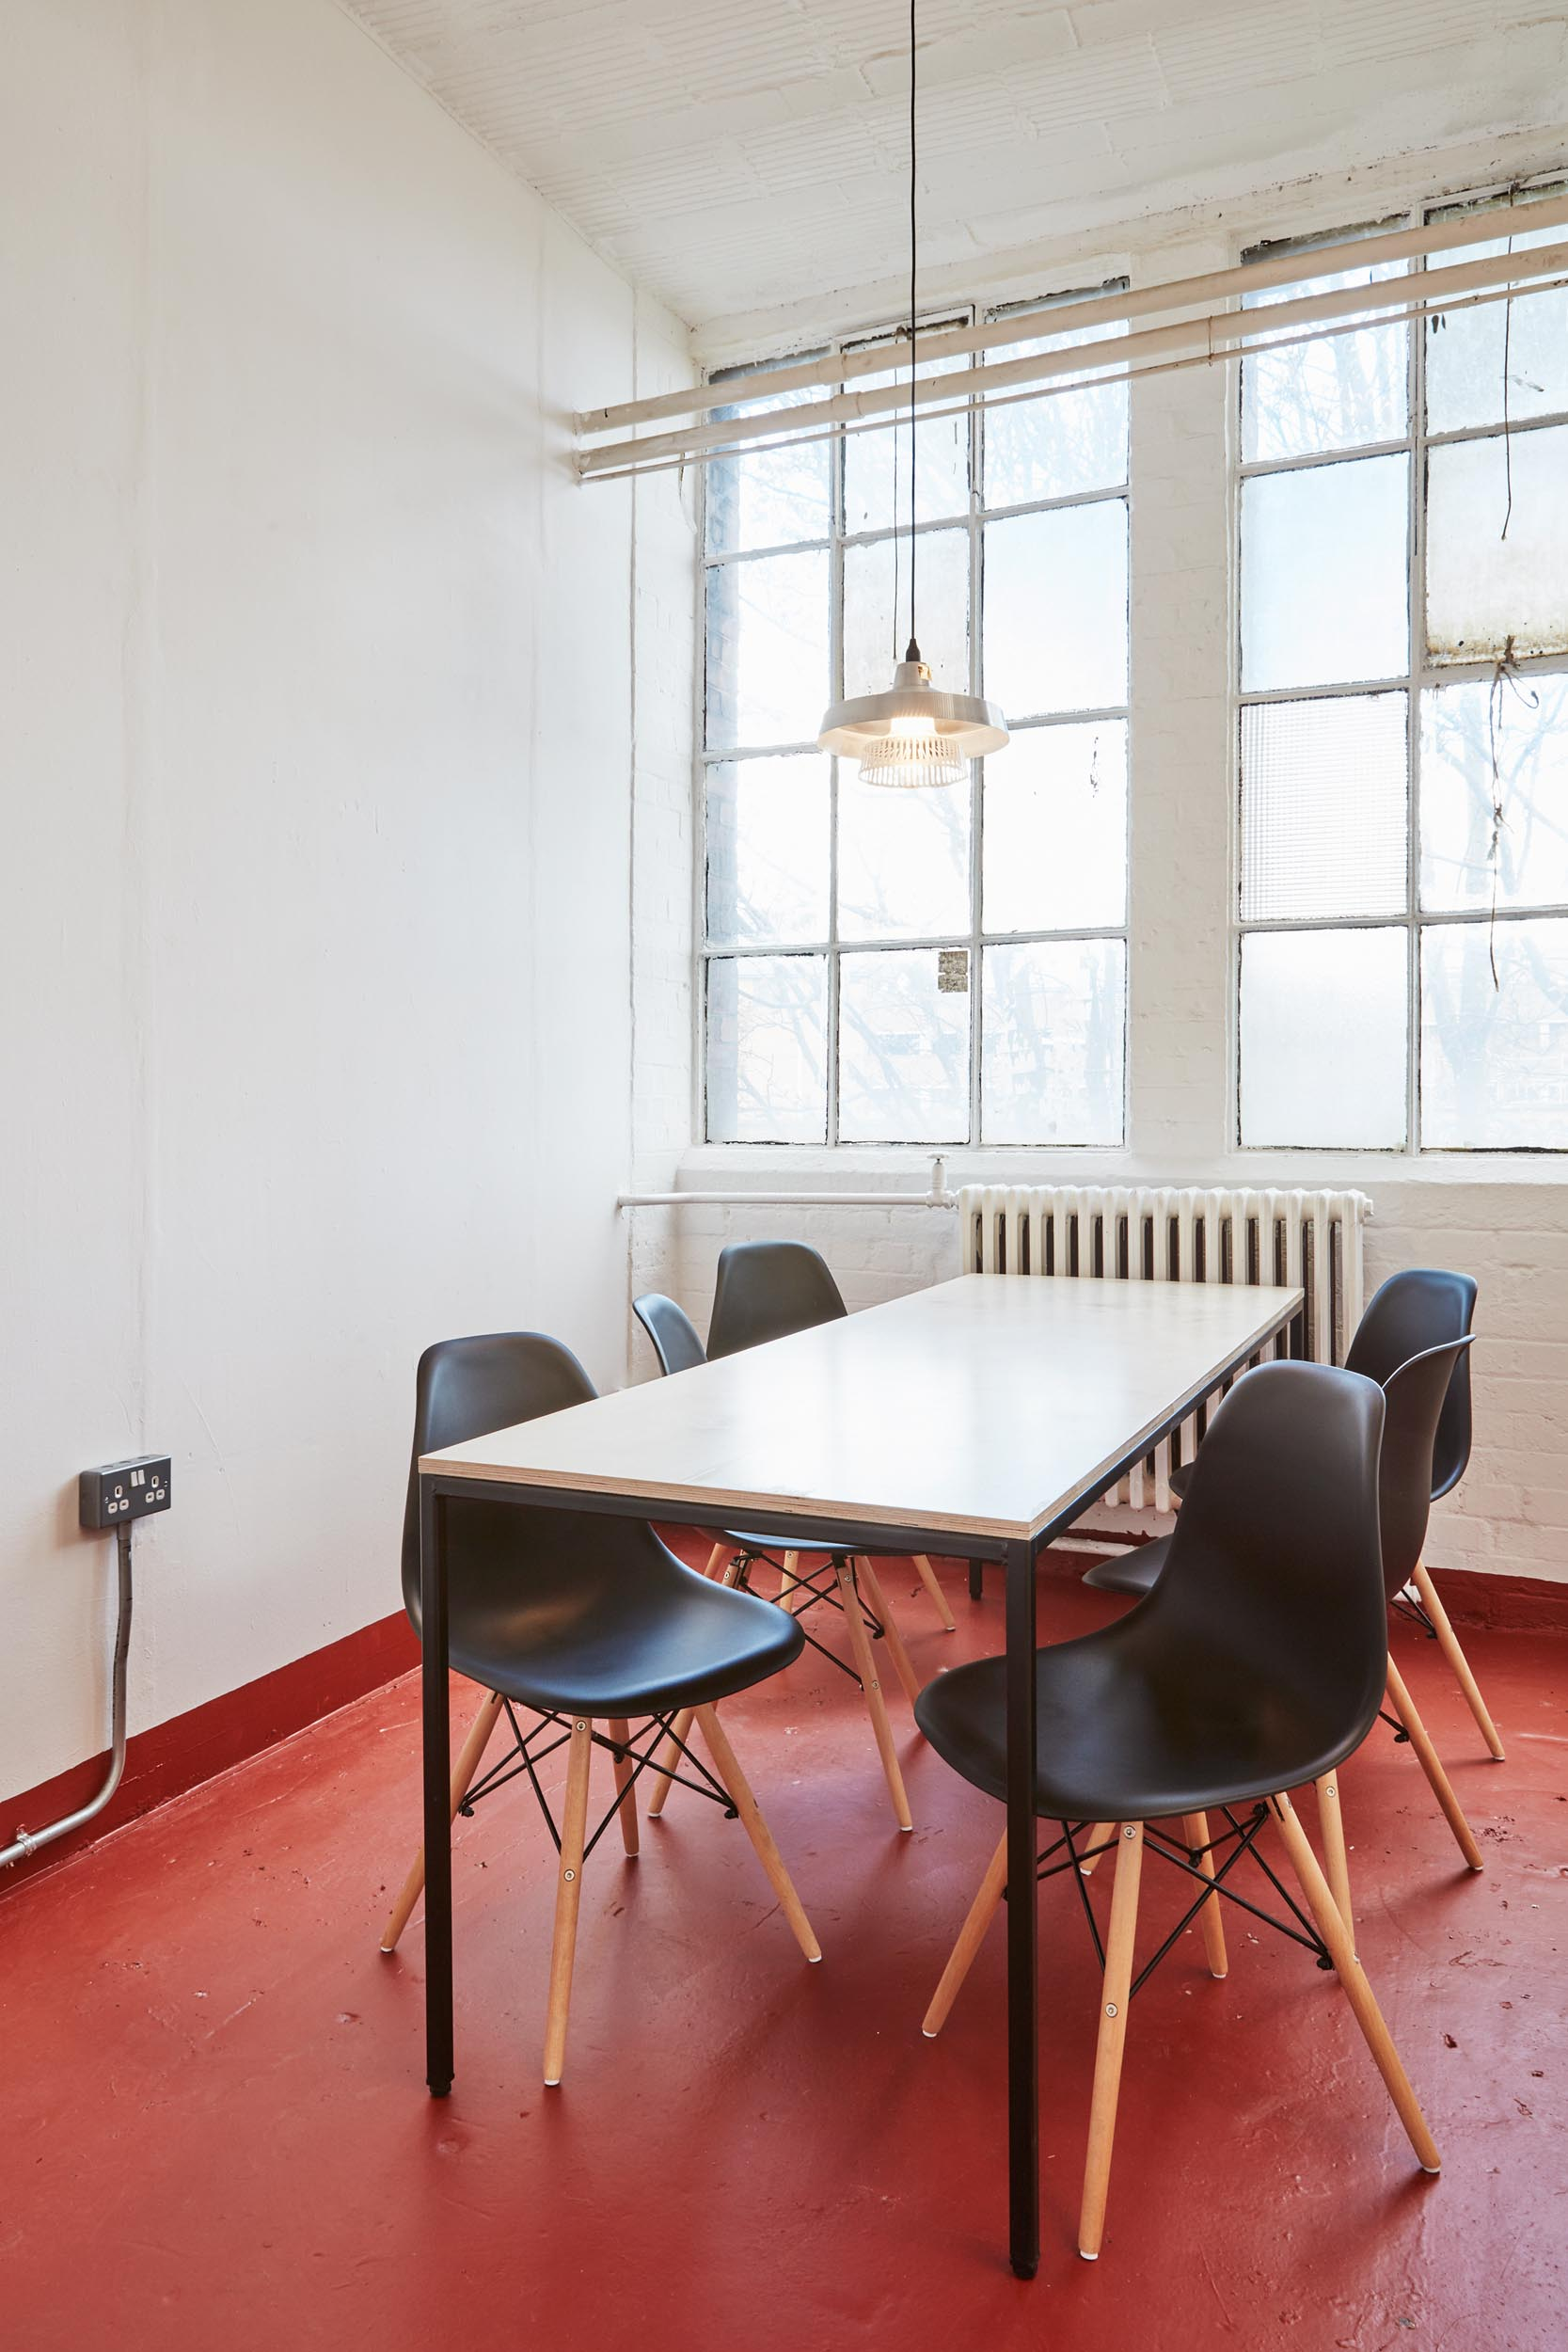 Meeting Room - Office Club - RYE Design